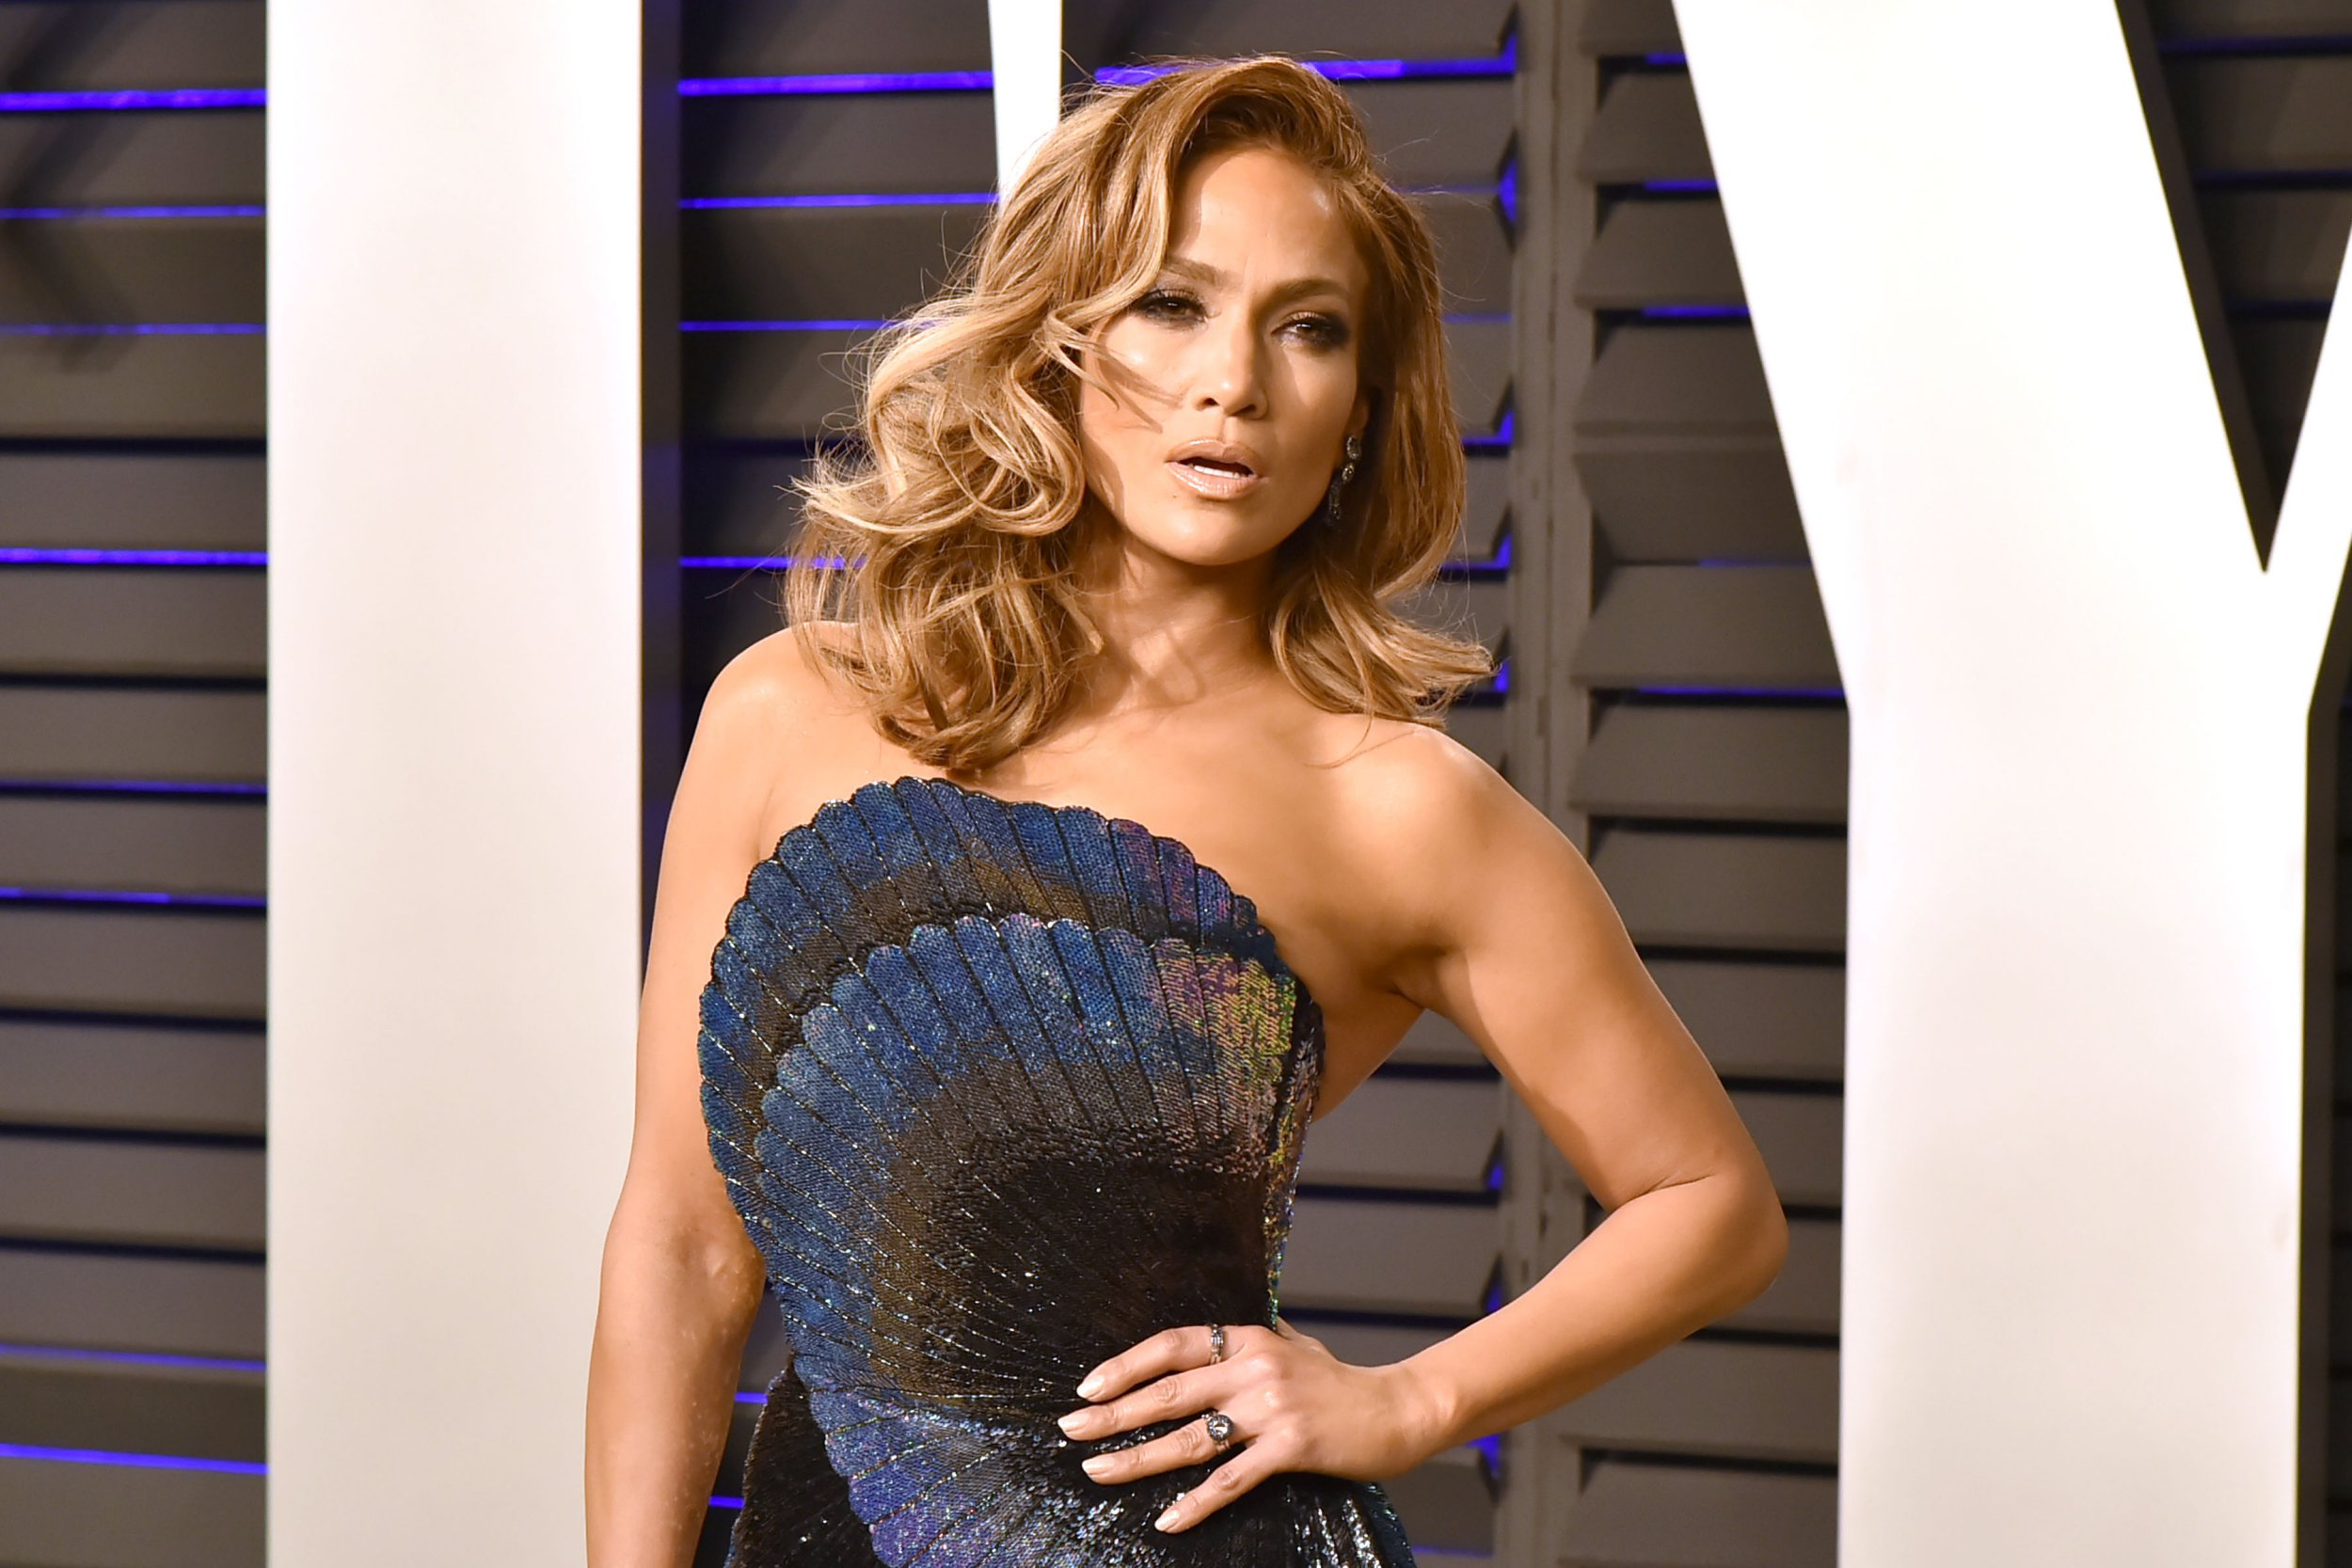 BEVERLY HILLS, CALIFORNIA - FEBRUARY 24: Jennifer Lopez attends the 2019 Vanity Fair Oscar Party at Wallis Annenberg Center for the Performing Arts on February 24, 2019 in Beverly Hills, California. (Photo by David Crotty/Patrick McMullan via Getty Images)